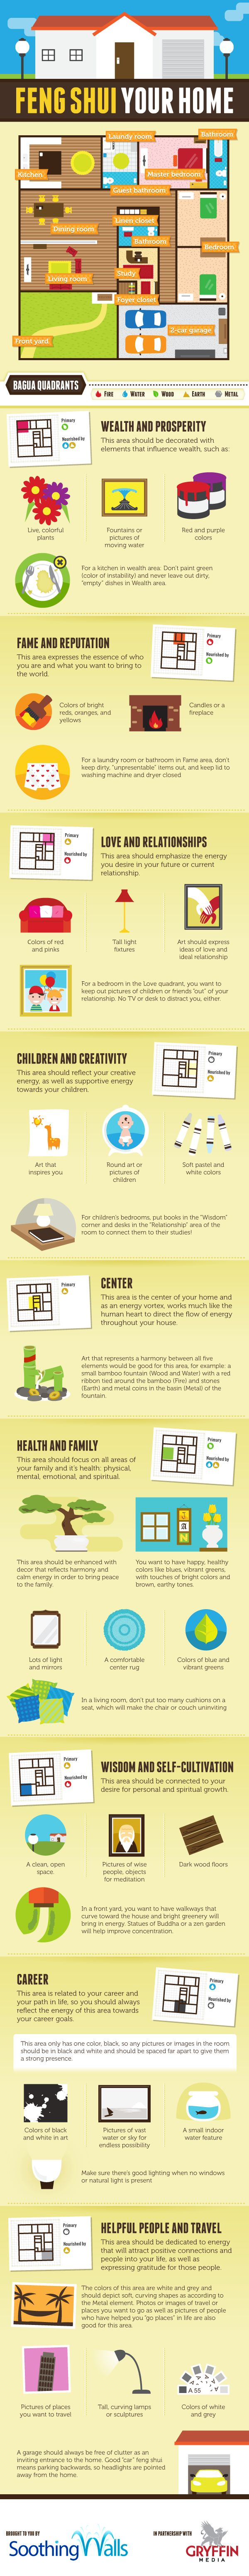 Image of the Week: Feng Shui Your #Home [#Infographic] | HomeAdvisor HomeSource Blog